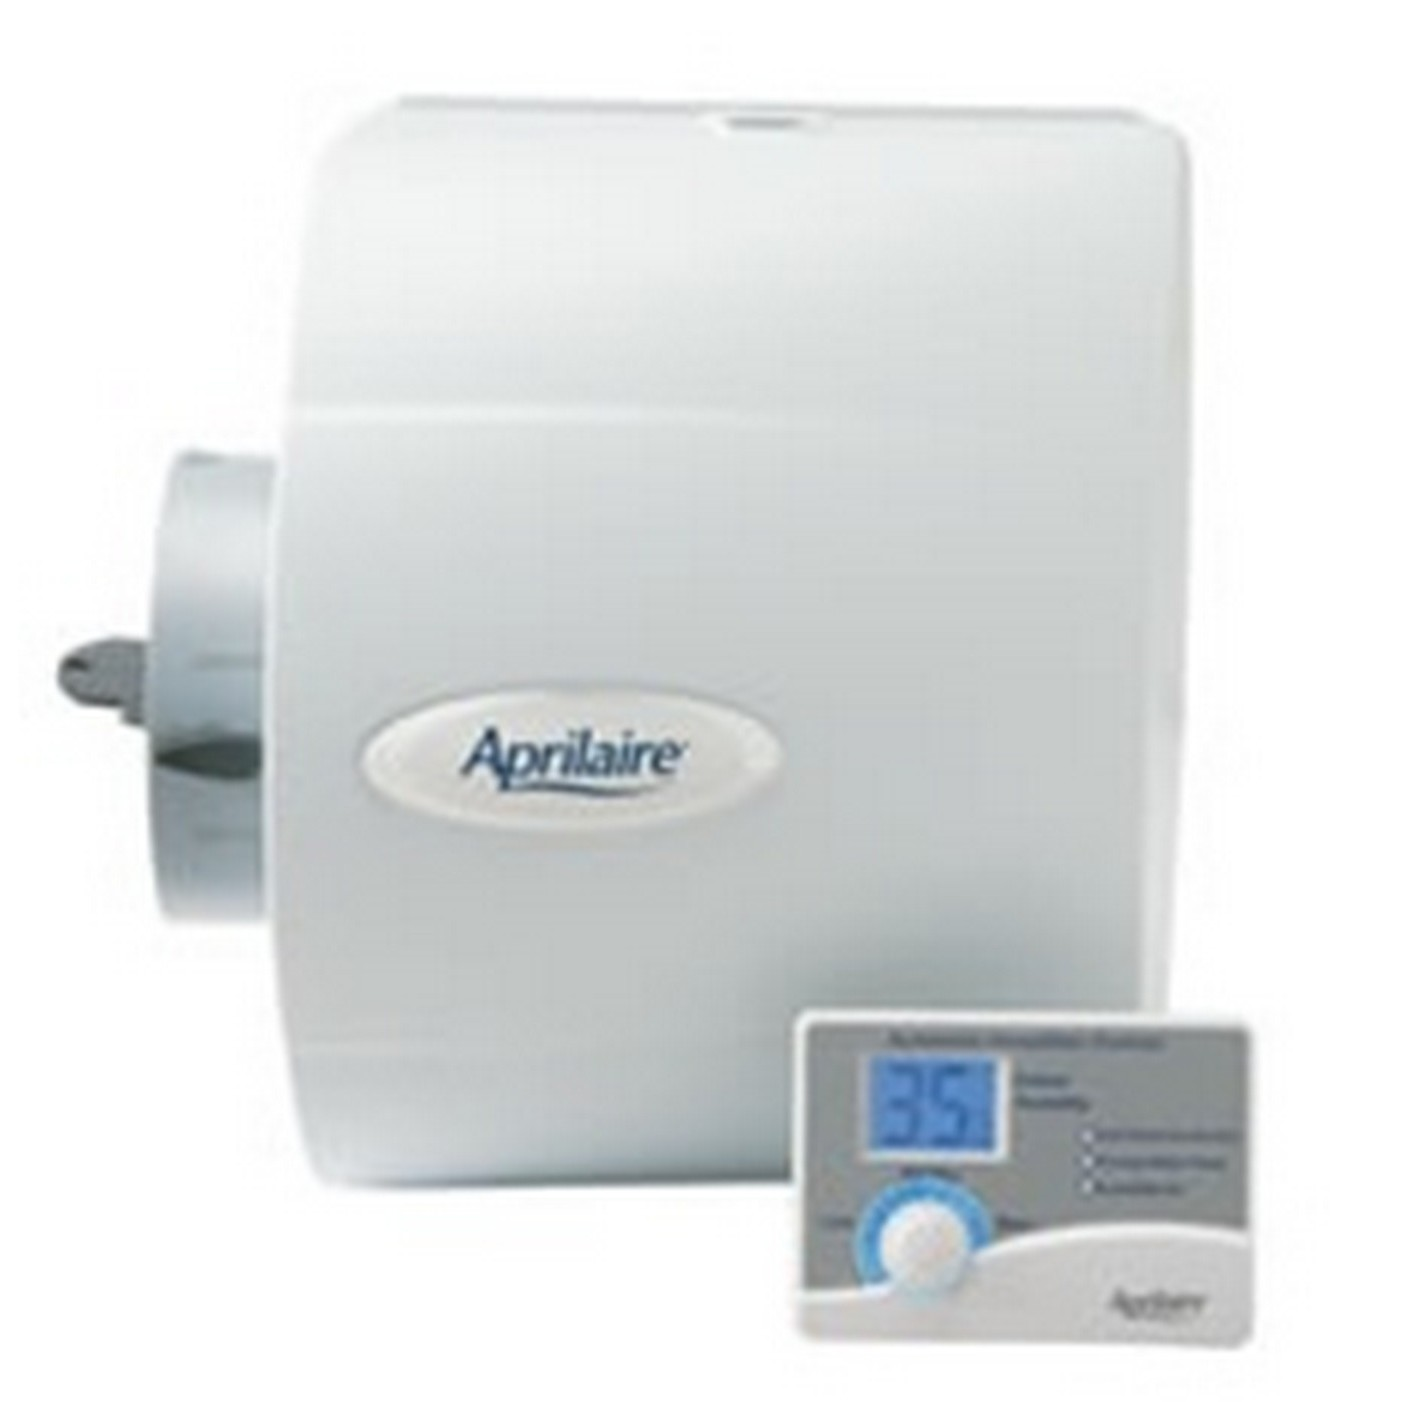 600 automatic bypass humidifier the aprilaire 600 bypass humidifier  #3B6390